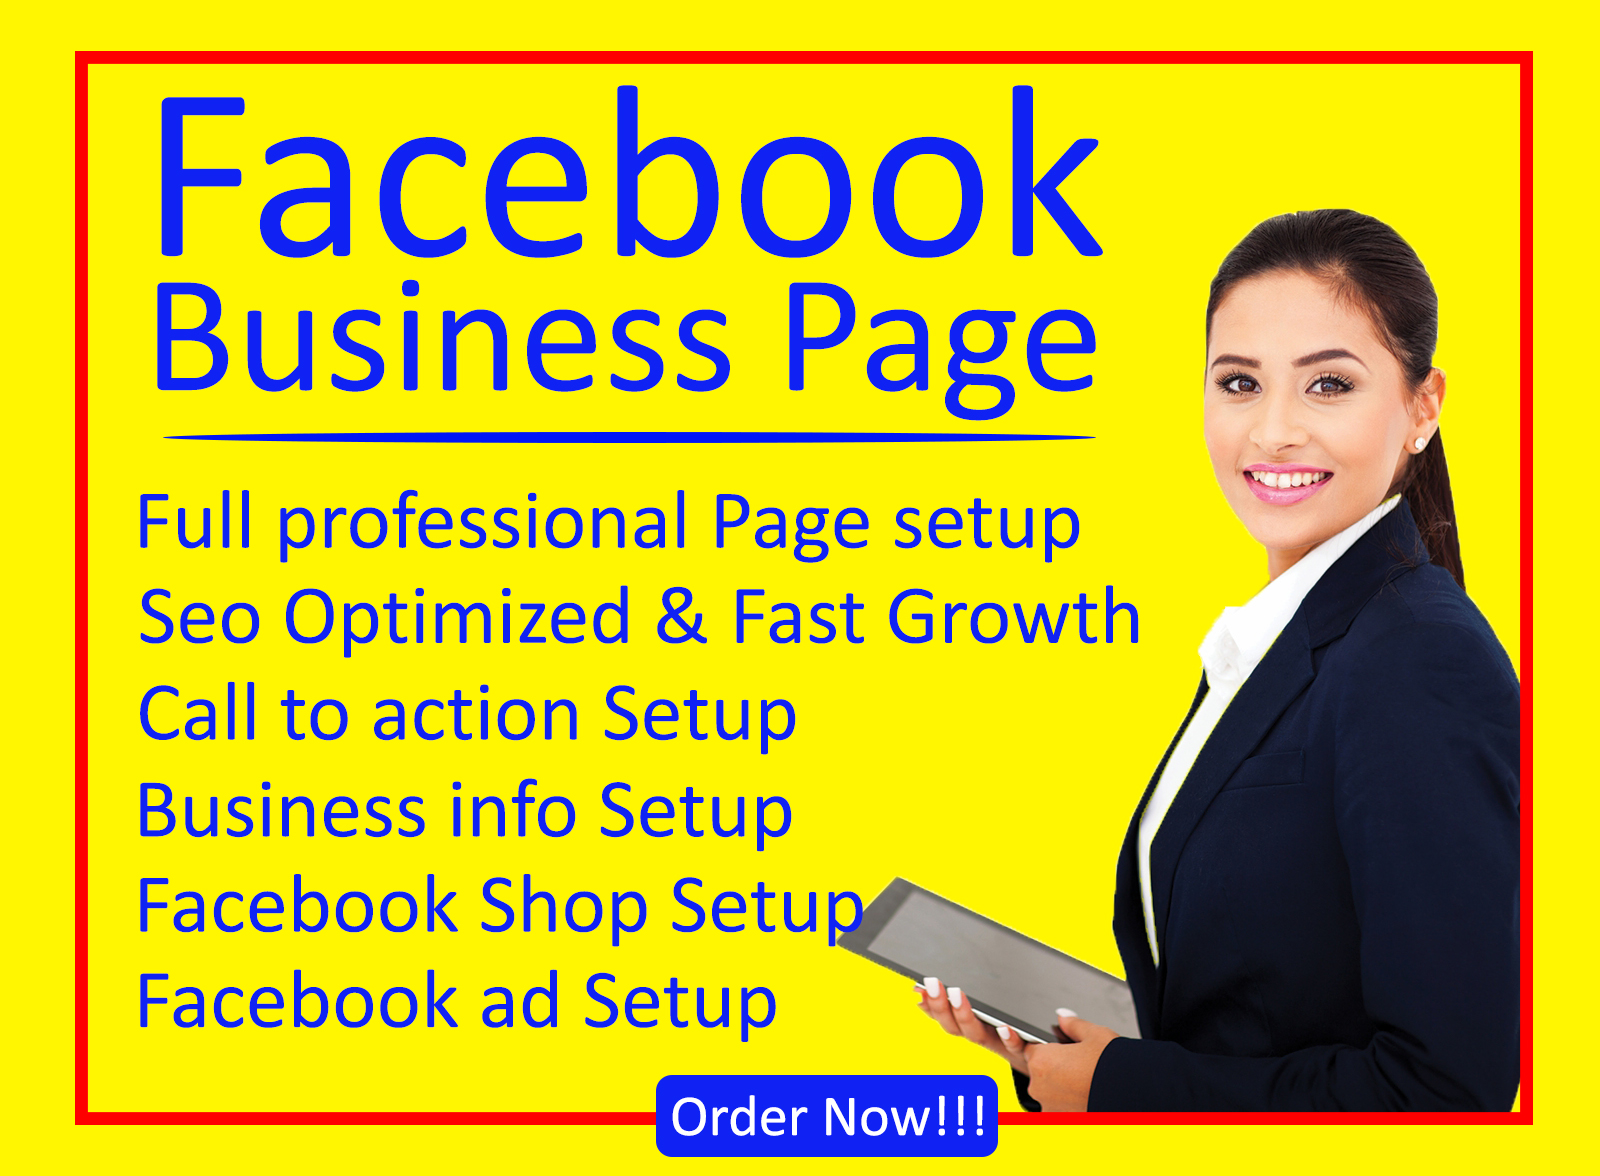 I will set up professional facebook business page